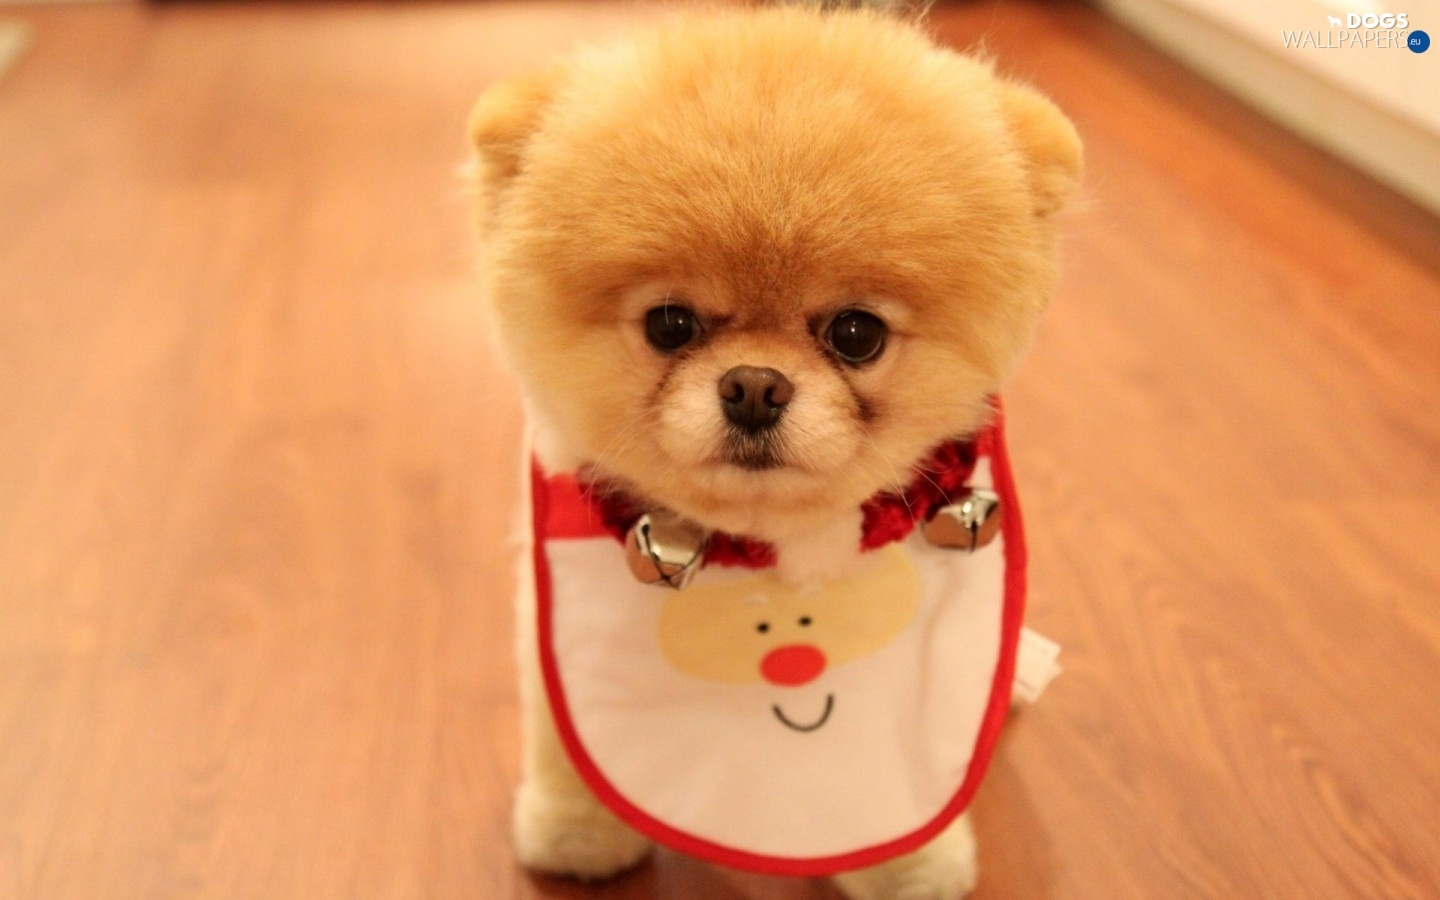 bib, Pomeranian, honeyed, doggy